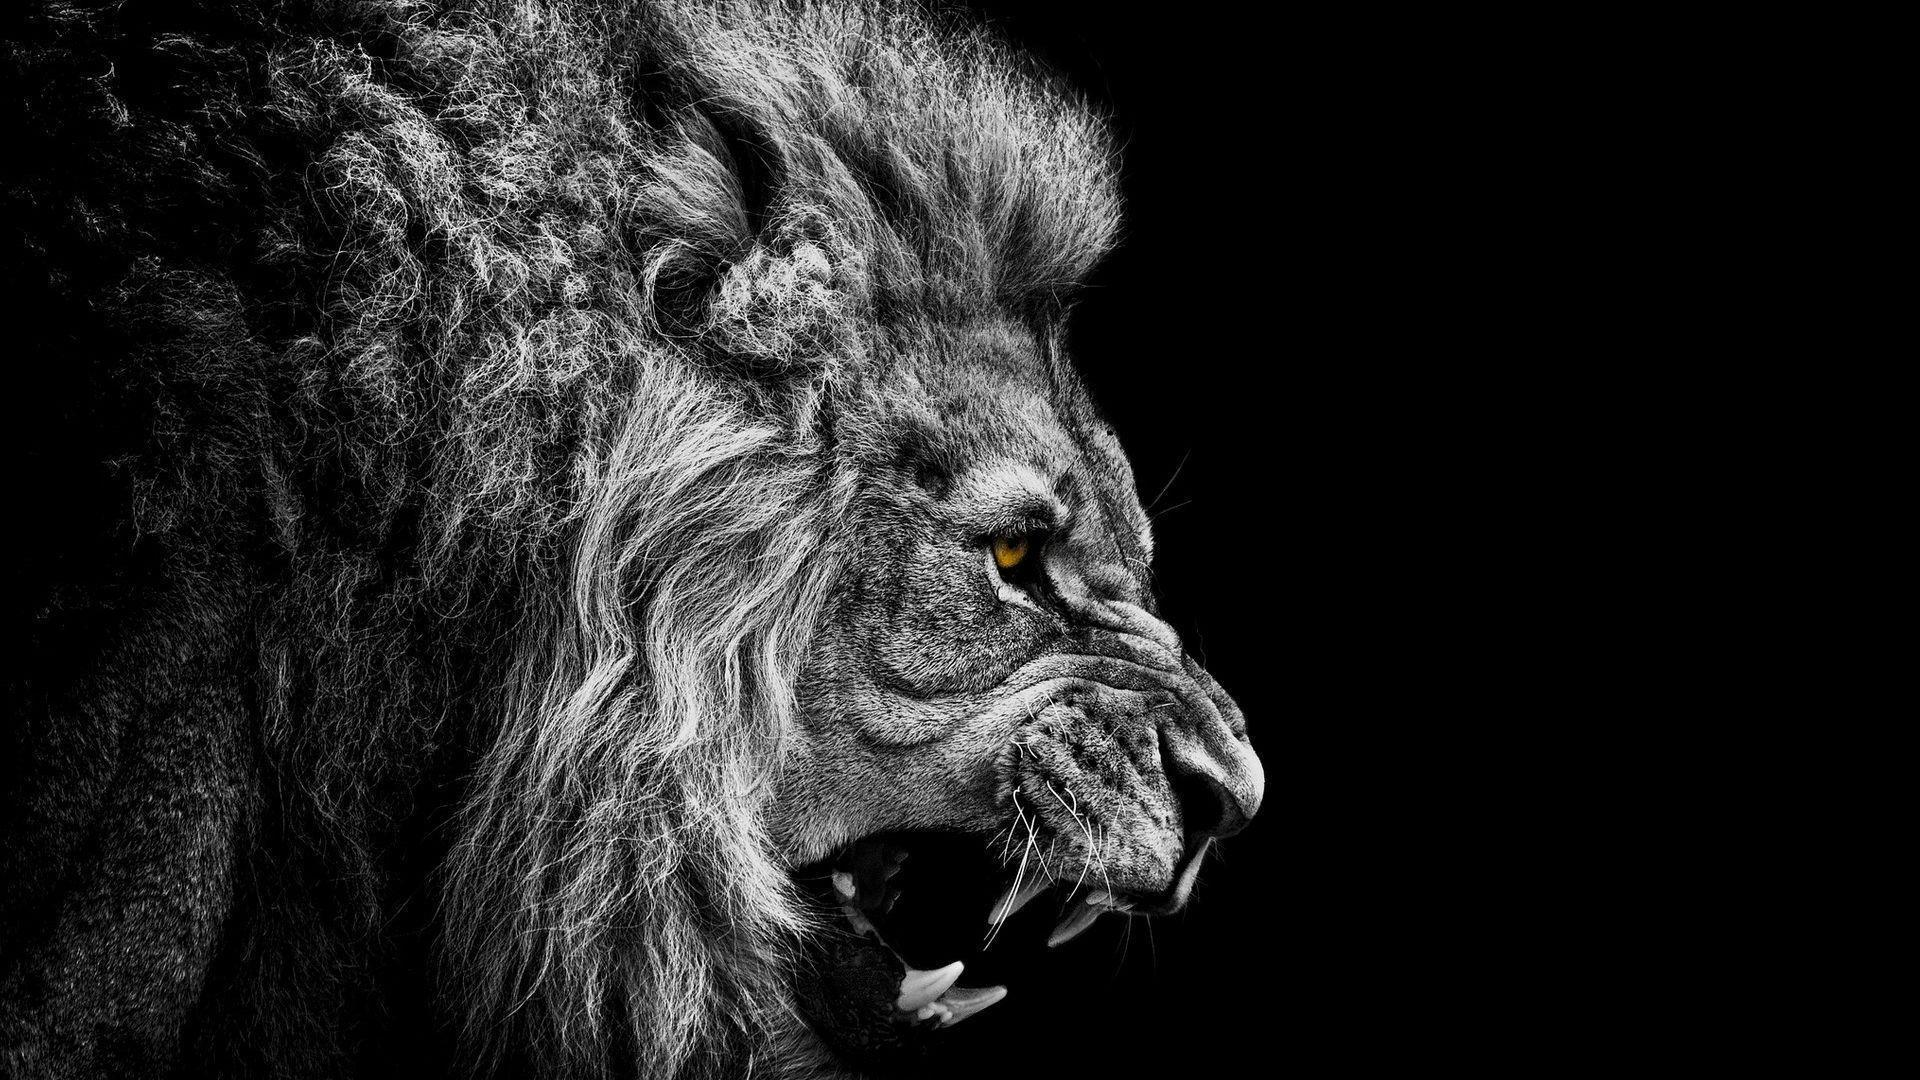 Lion Wallpaper HD 15 689 HD Wallpaper | Wallroro.